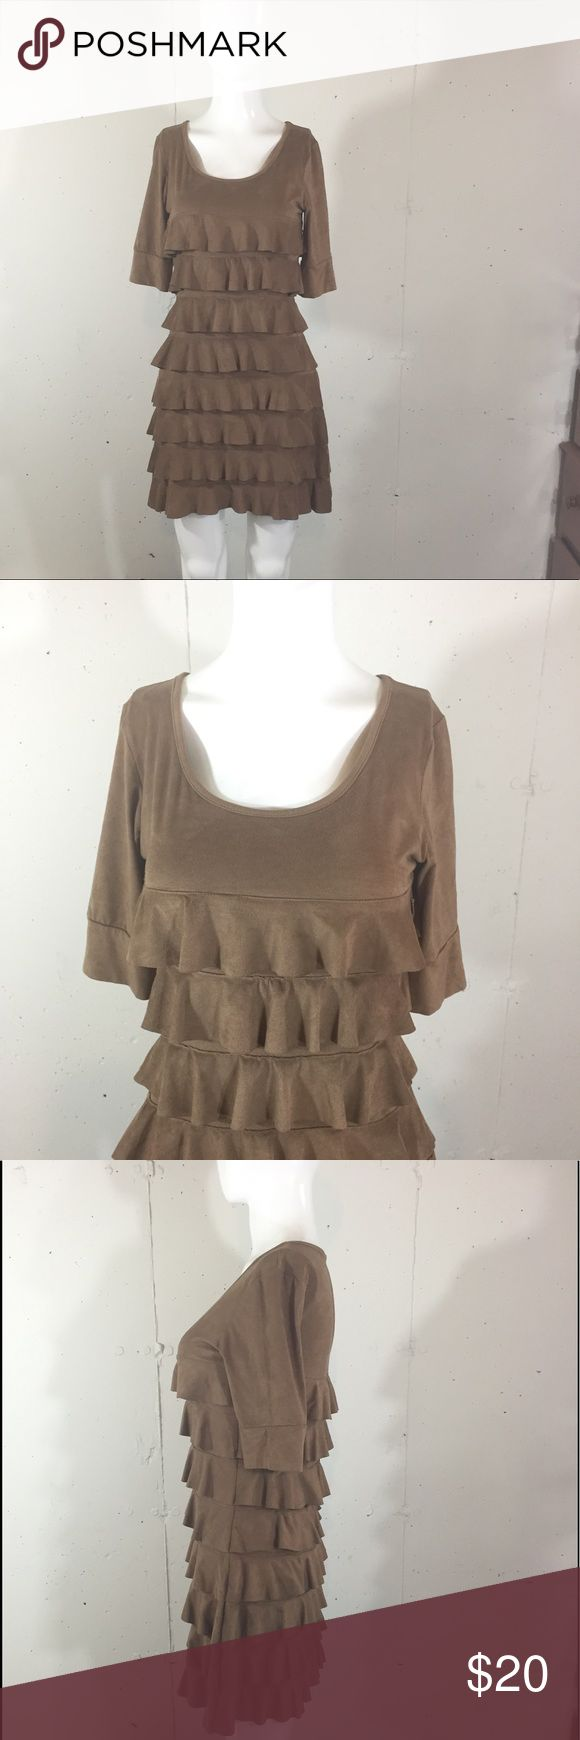 "Isle Apparel sz s brown suede like tiered dress Above knee boho festival dress 36"" bust 12"" sleeves, 33"" long brown faux suede fabric so soft isle apparel Dresses Mini"